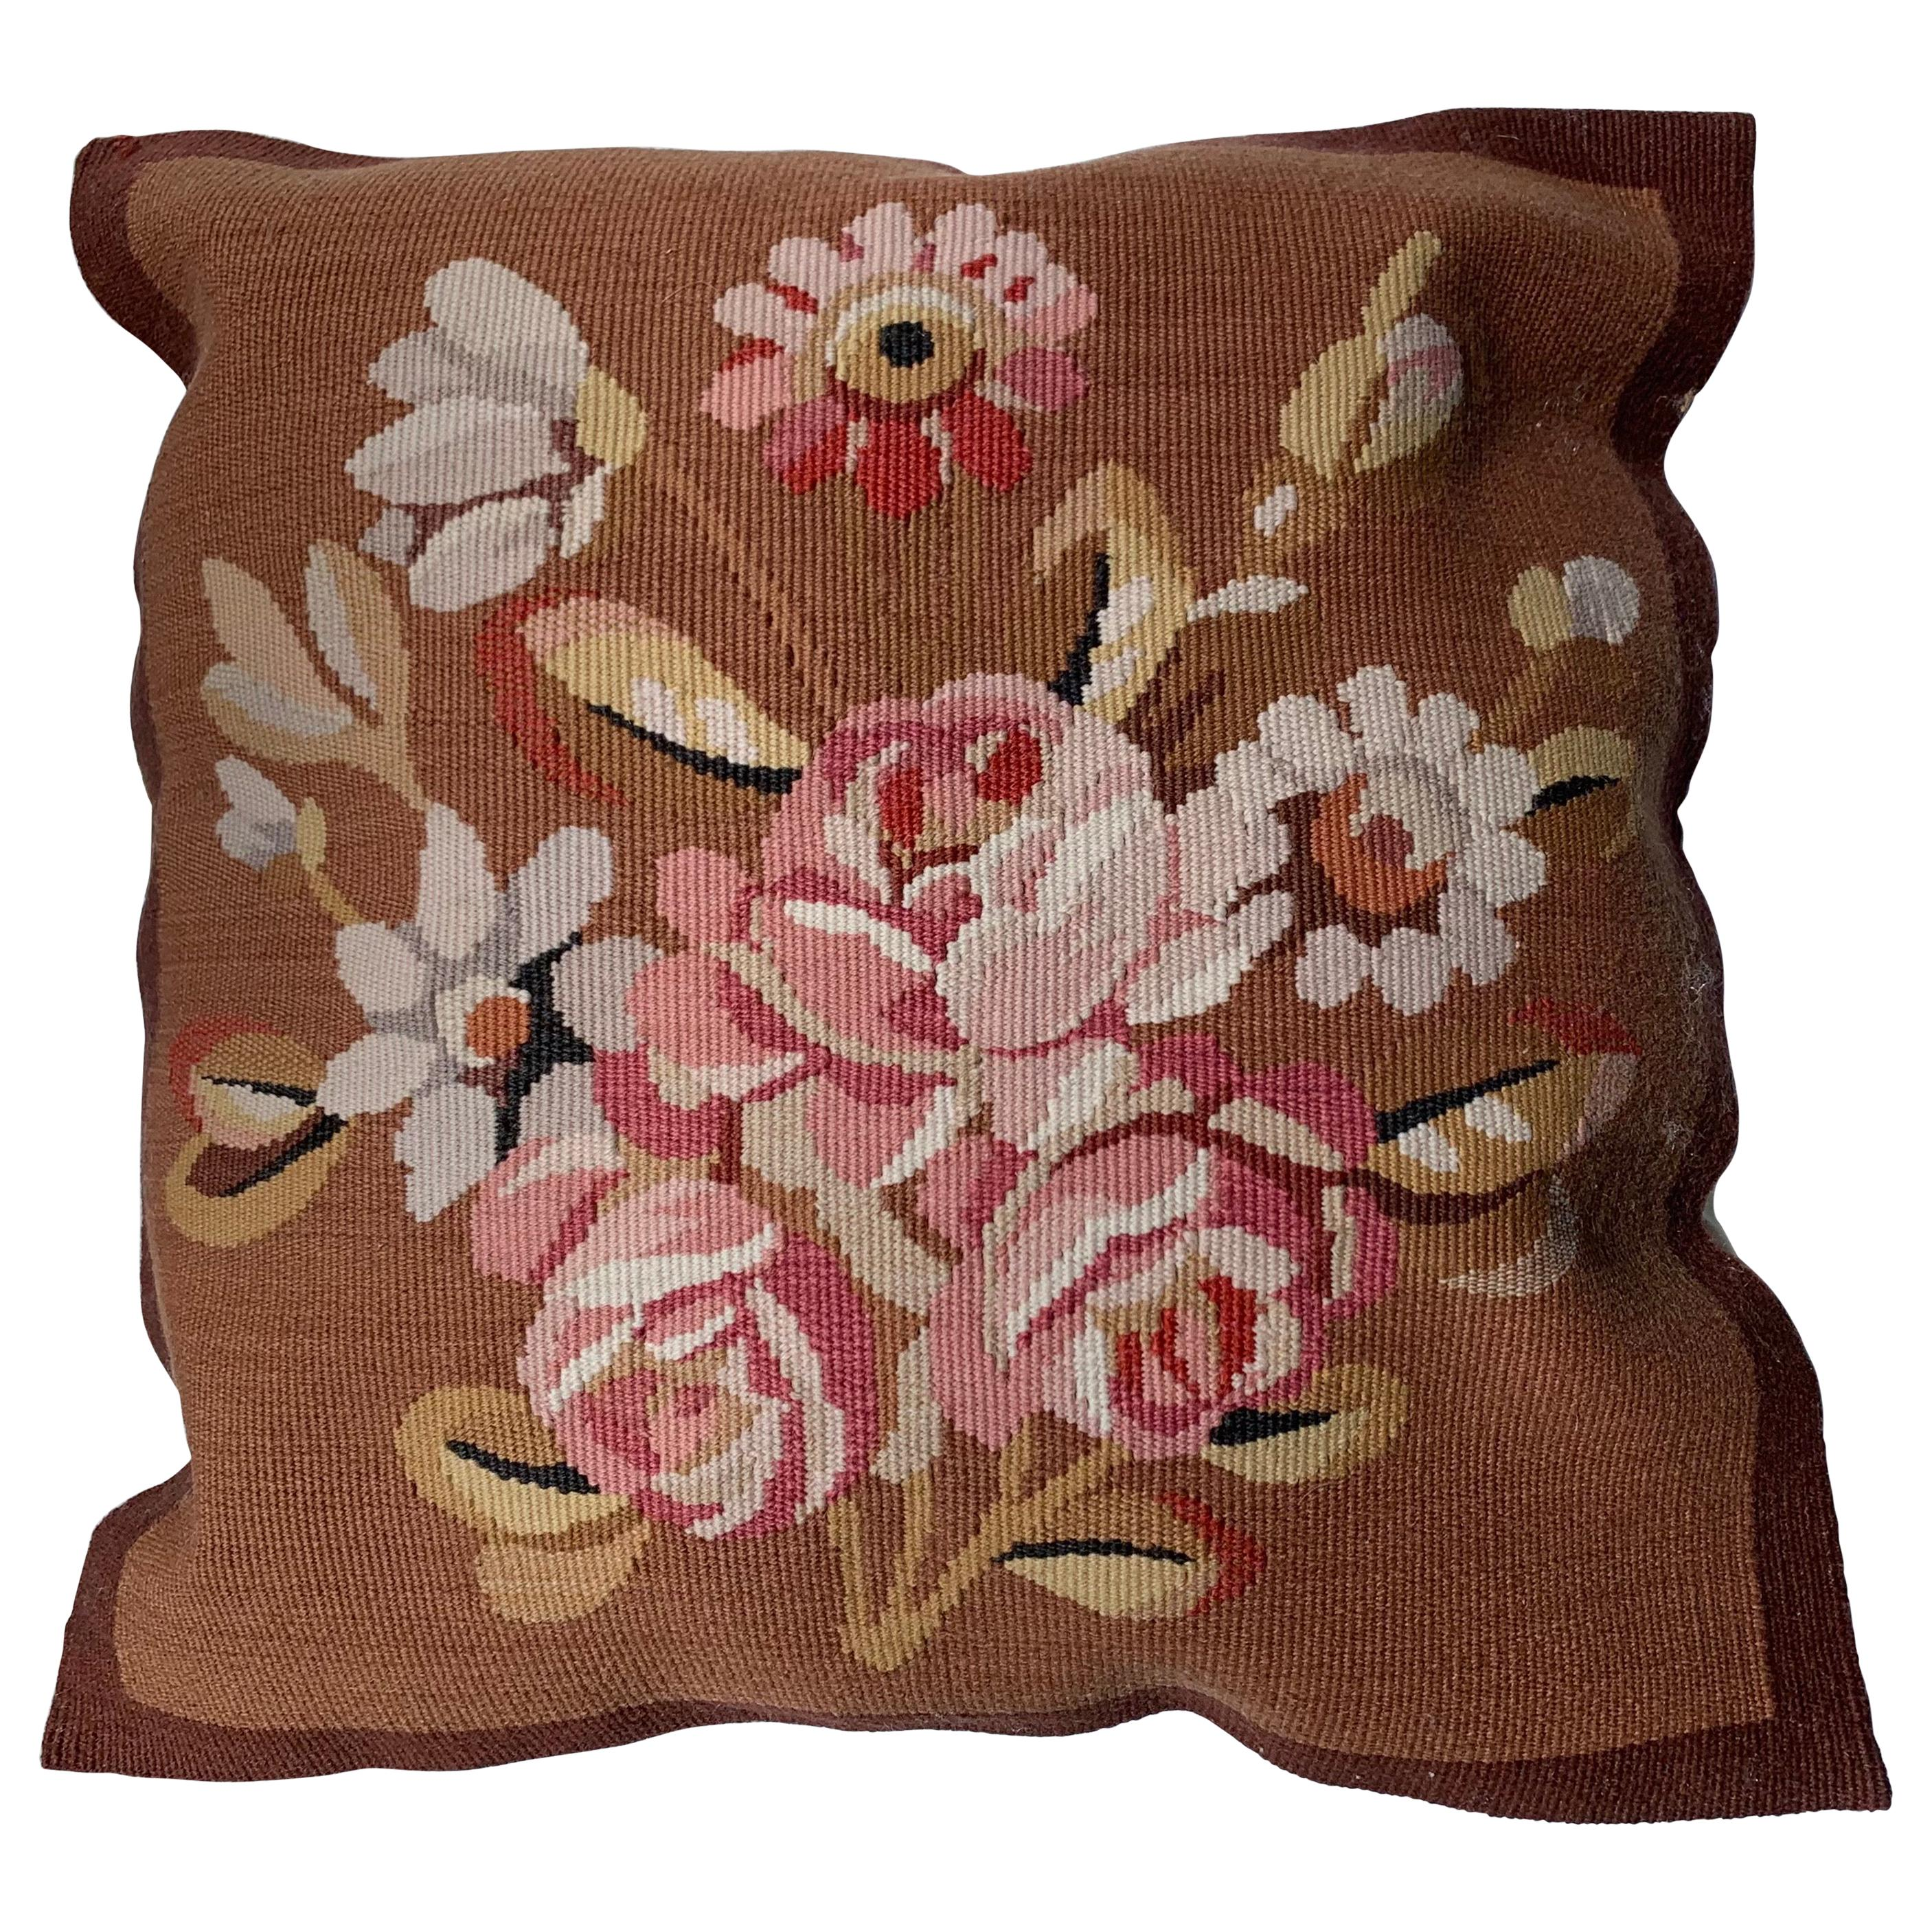 20th Century Floral French Aubusson Tapestry Style Needlepoint Square Pillow